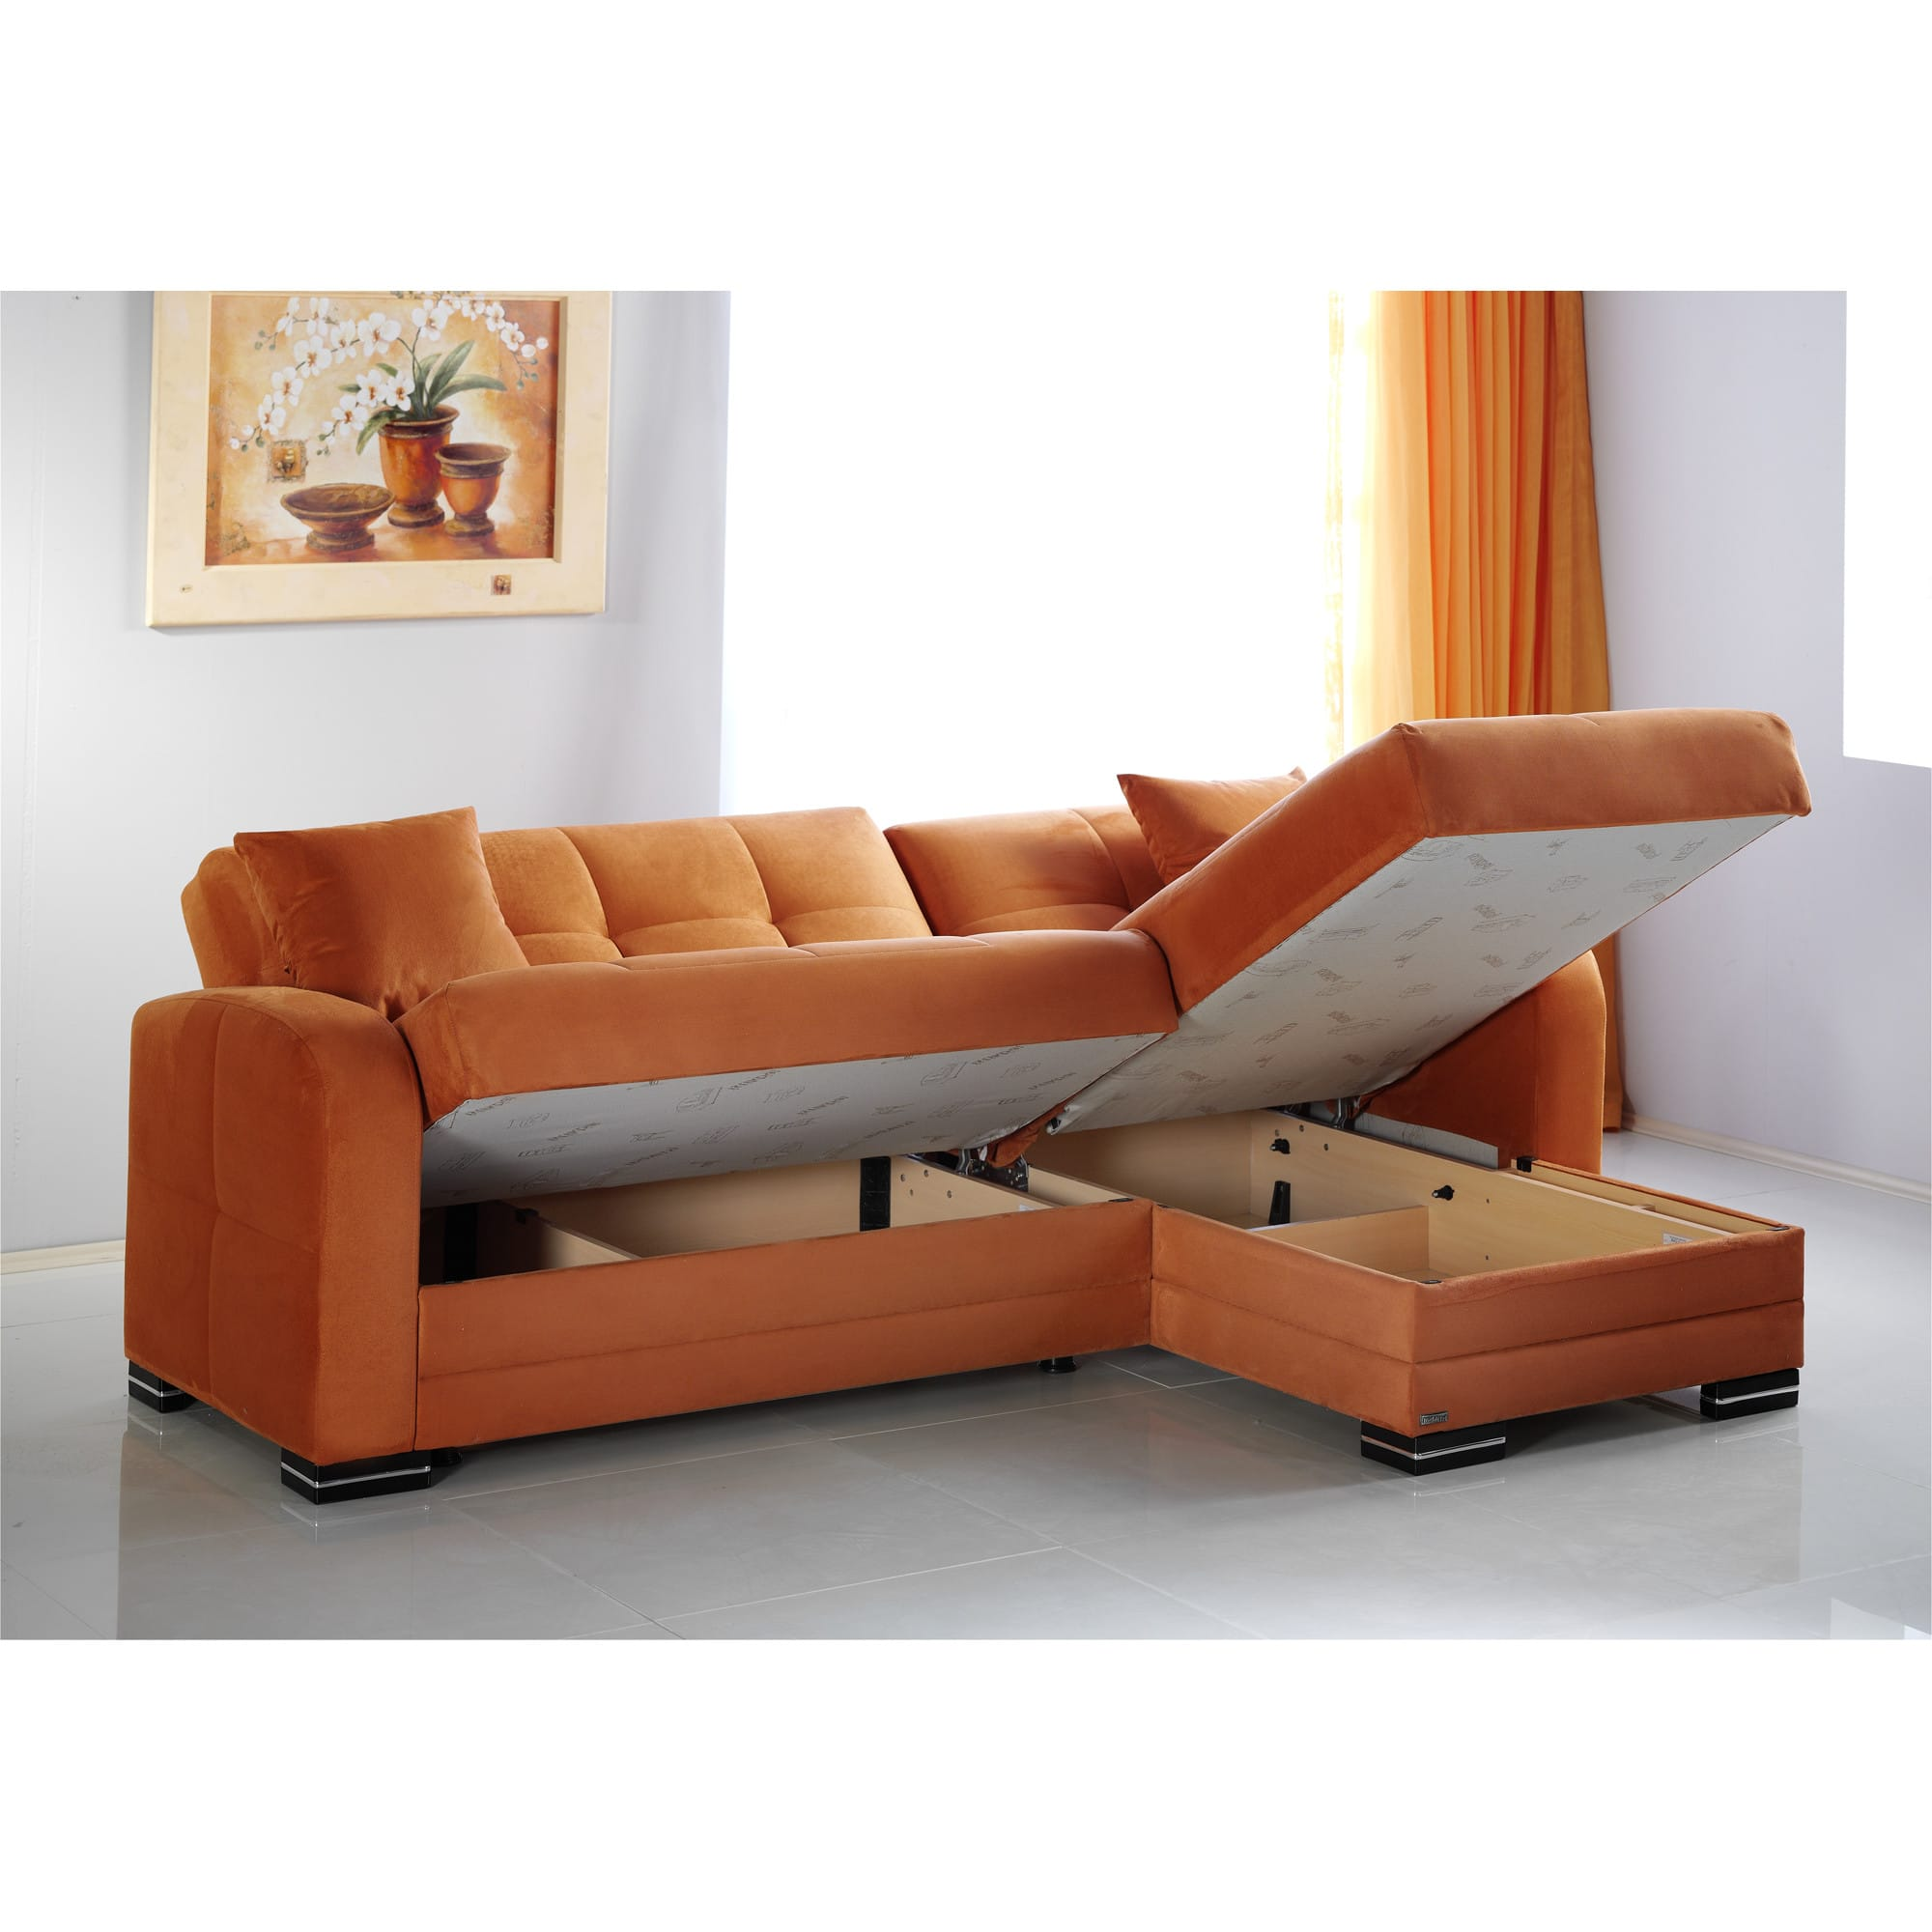 kubo rainbow orange sectional sofa by istikbal sunset - Chaise Orange